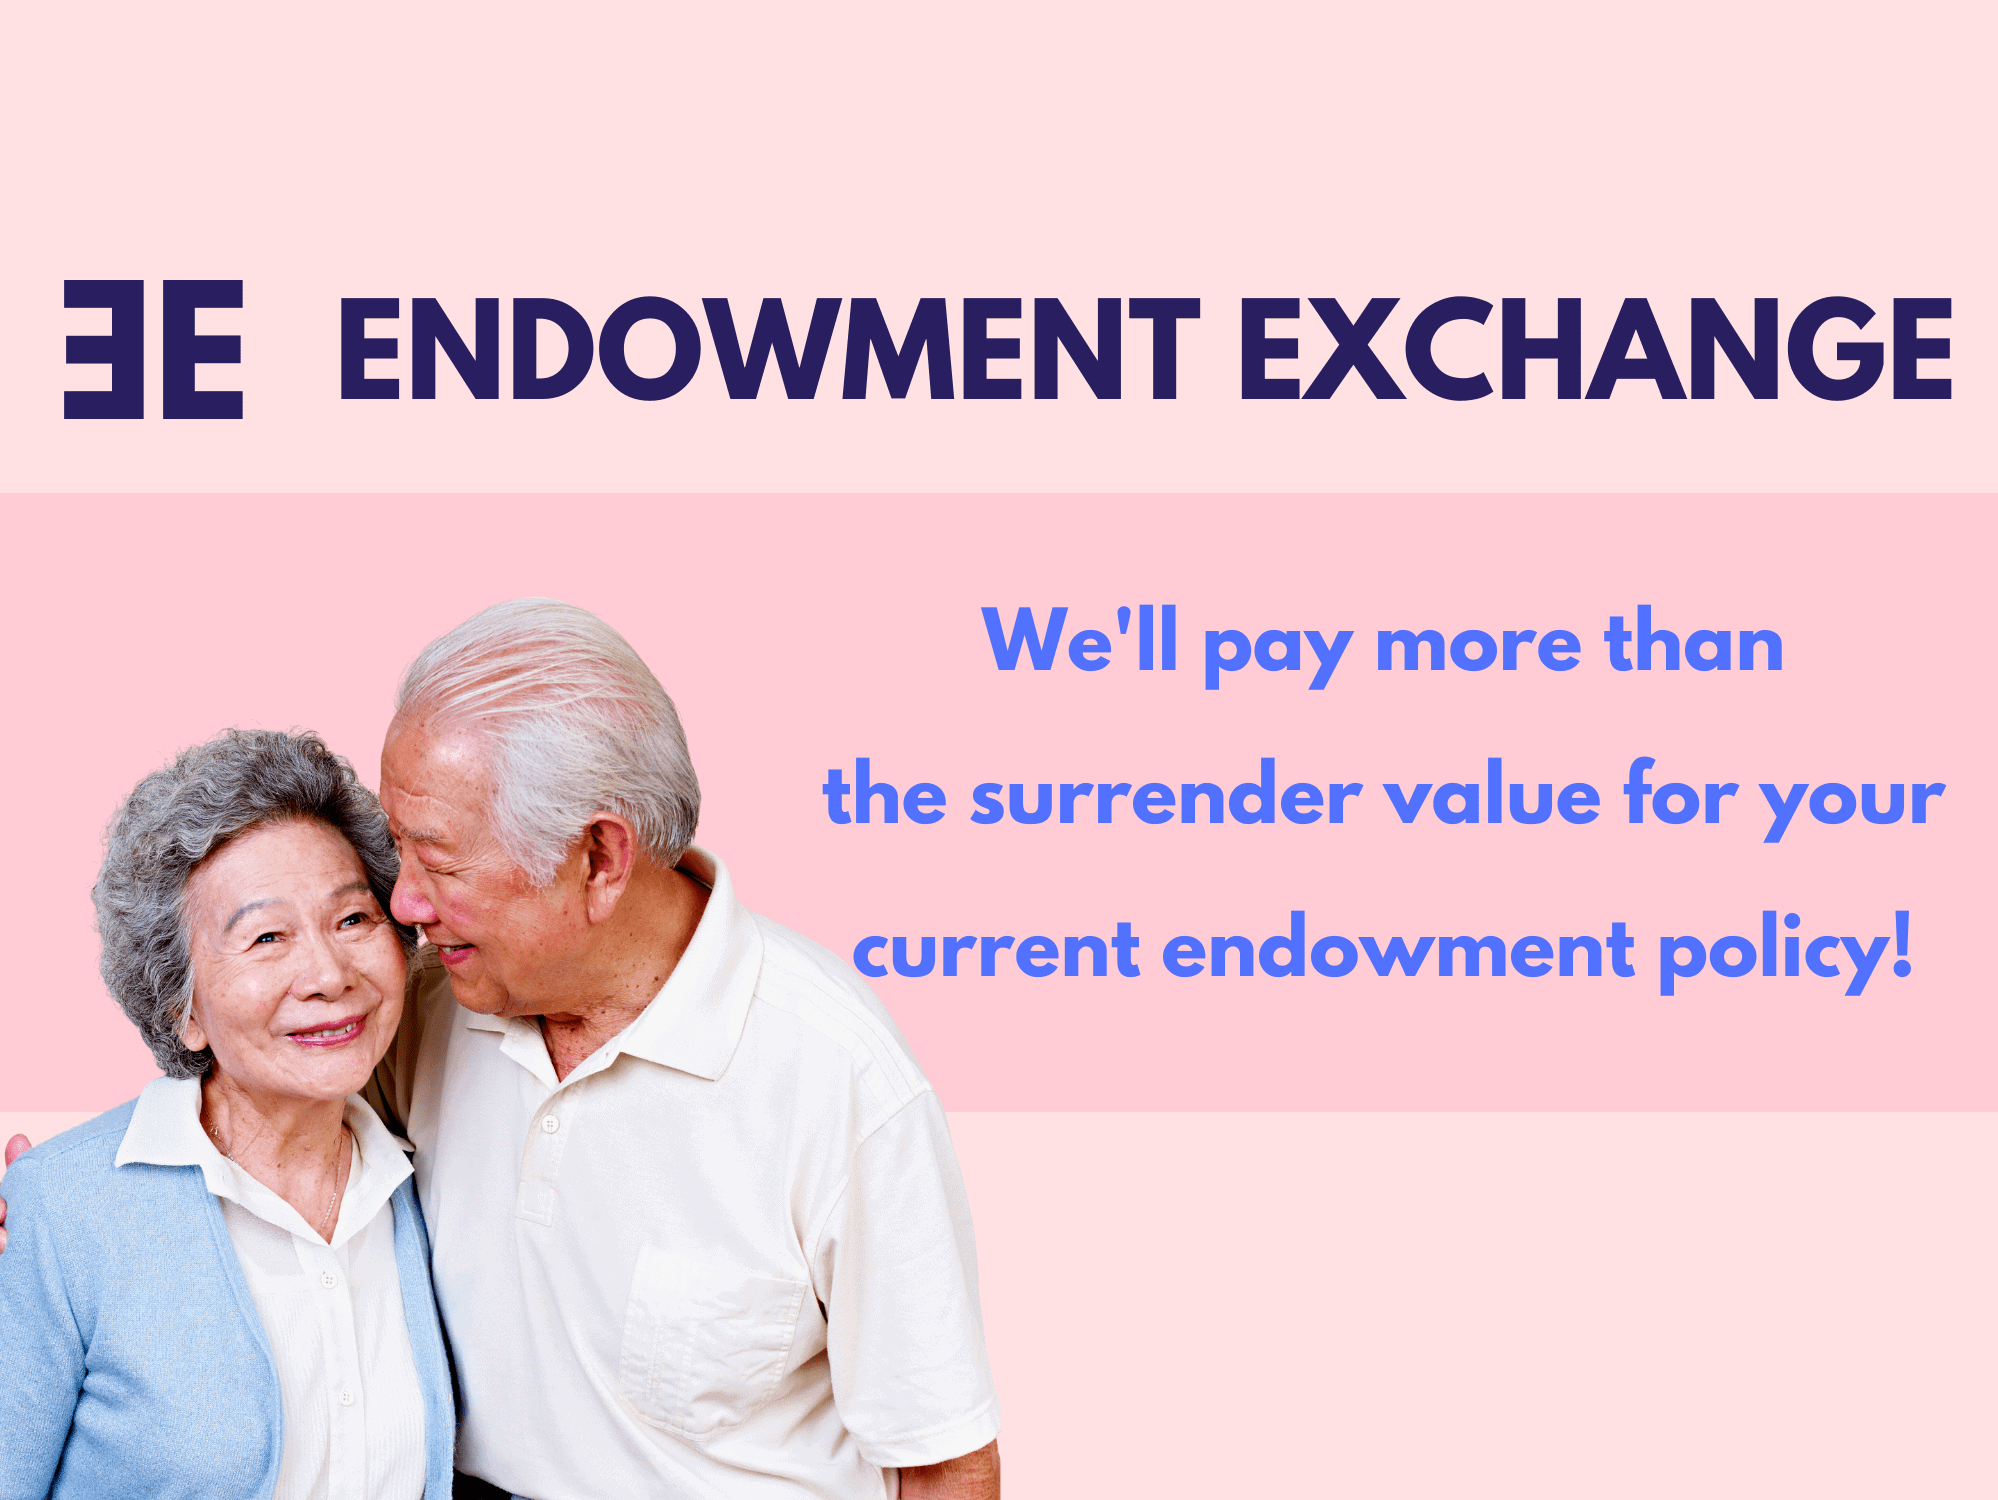 We launched Endowment Exchange! Sell your endowment policy for more than its surrender value!